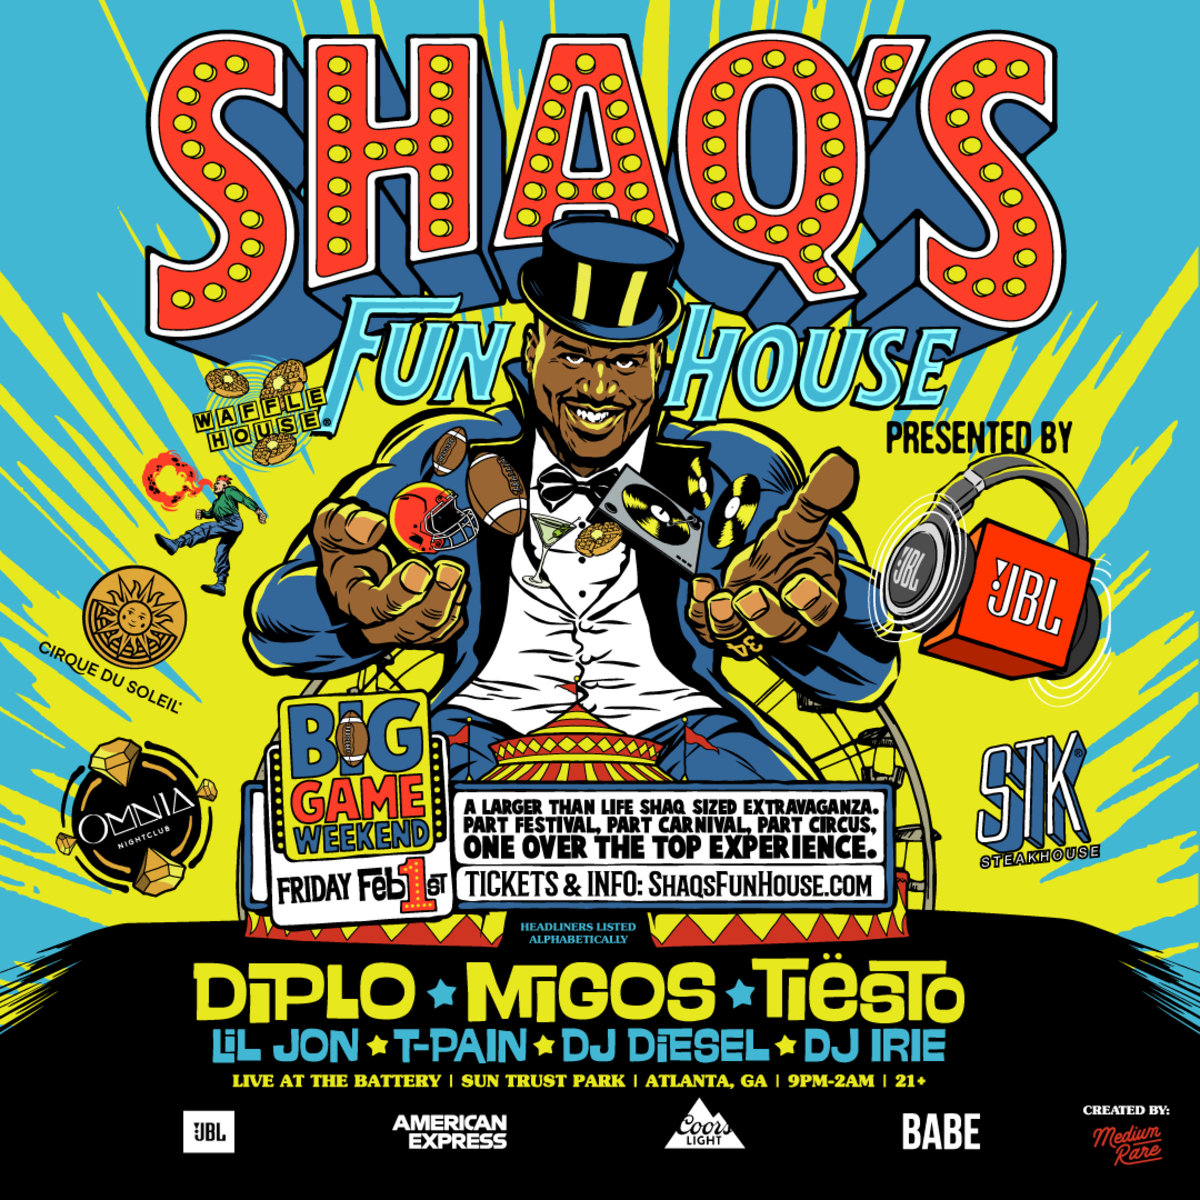 Shaq's Fun House flyer for Atlanta 2019 event featuring Diplo, Migos and Tiësto.